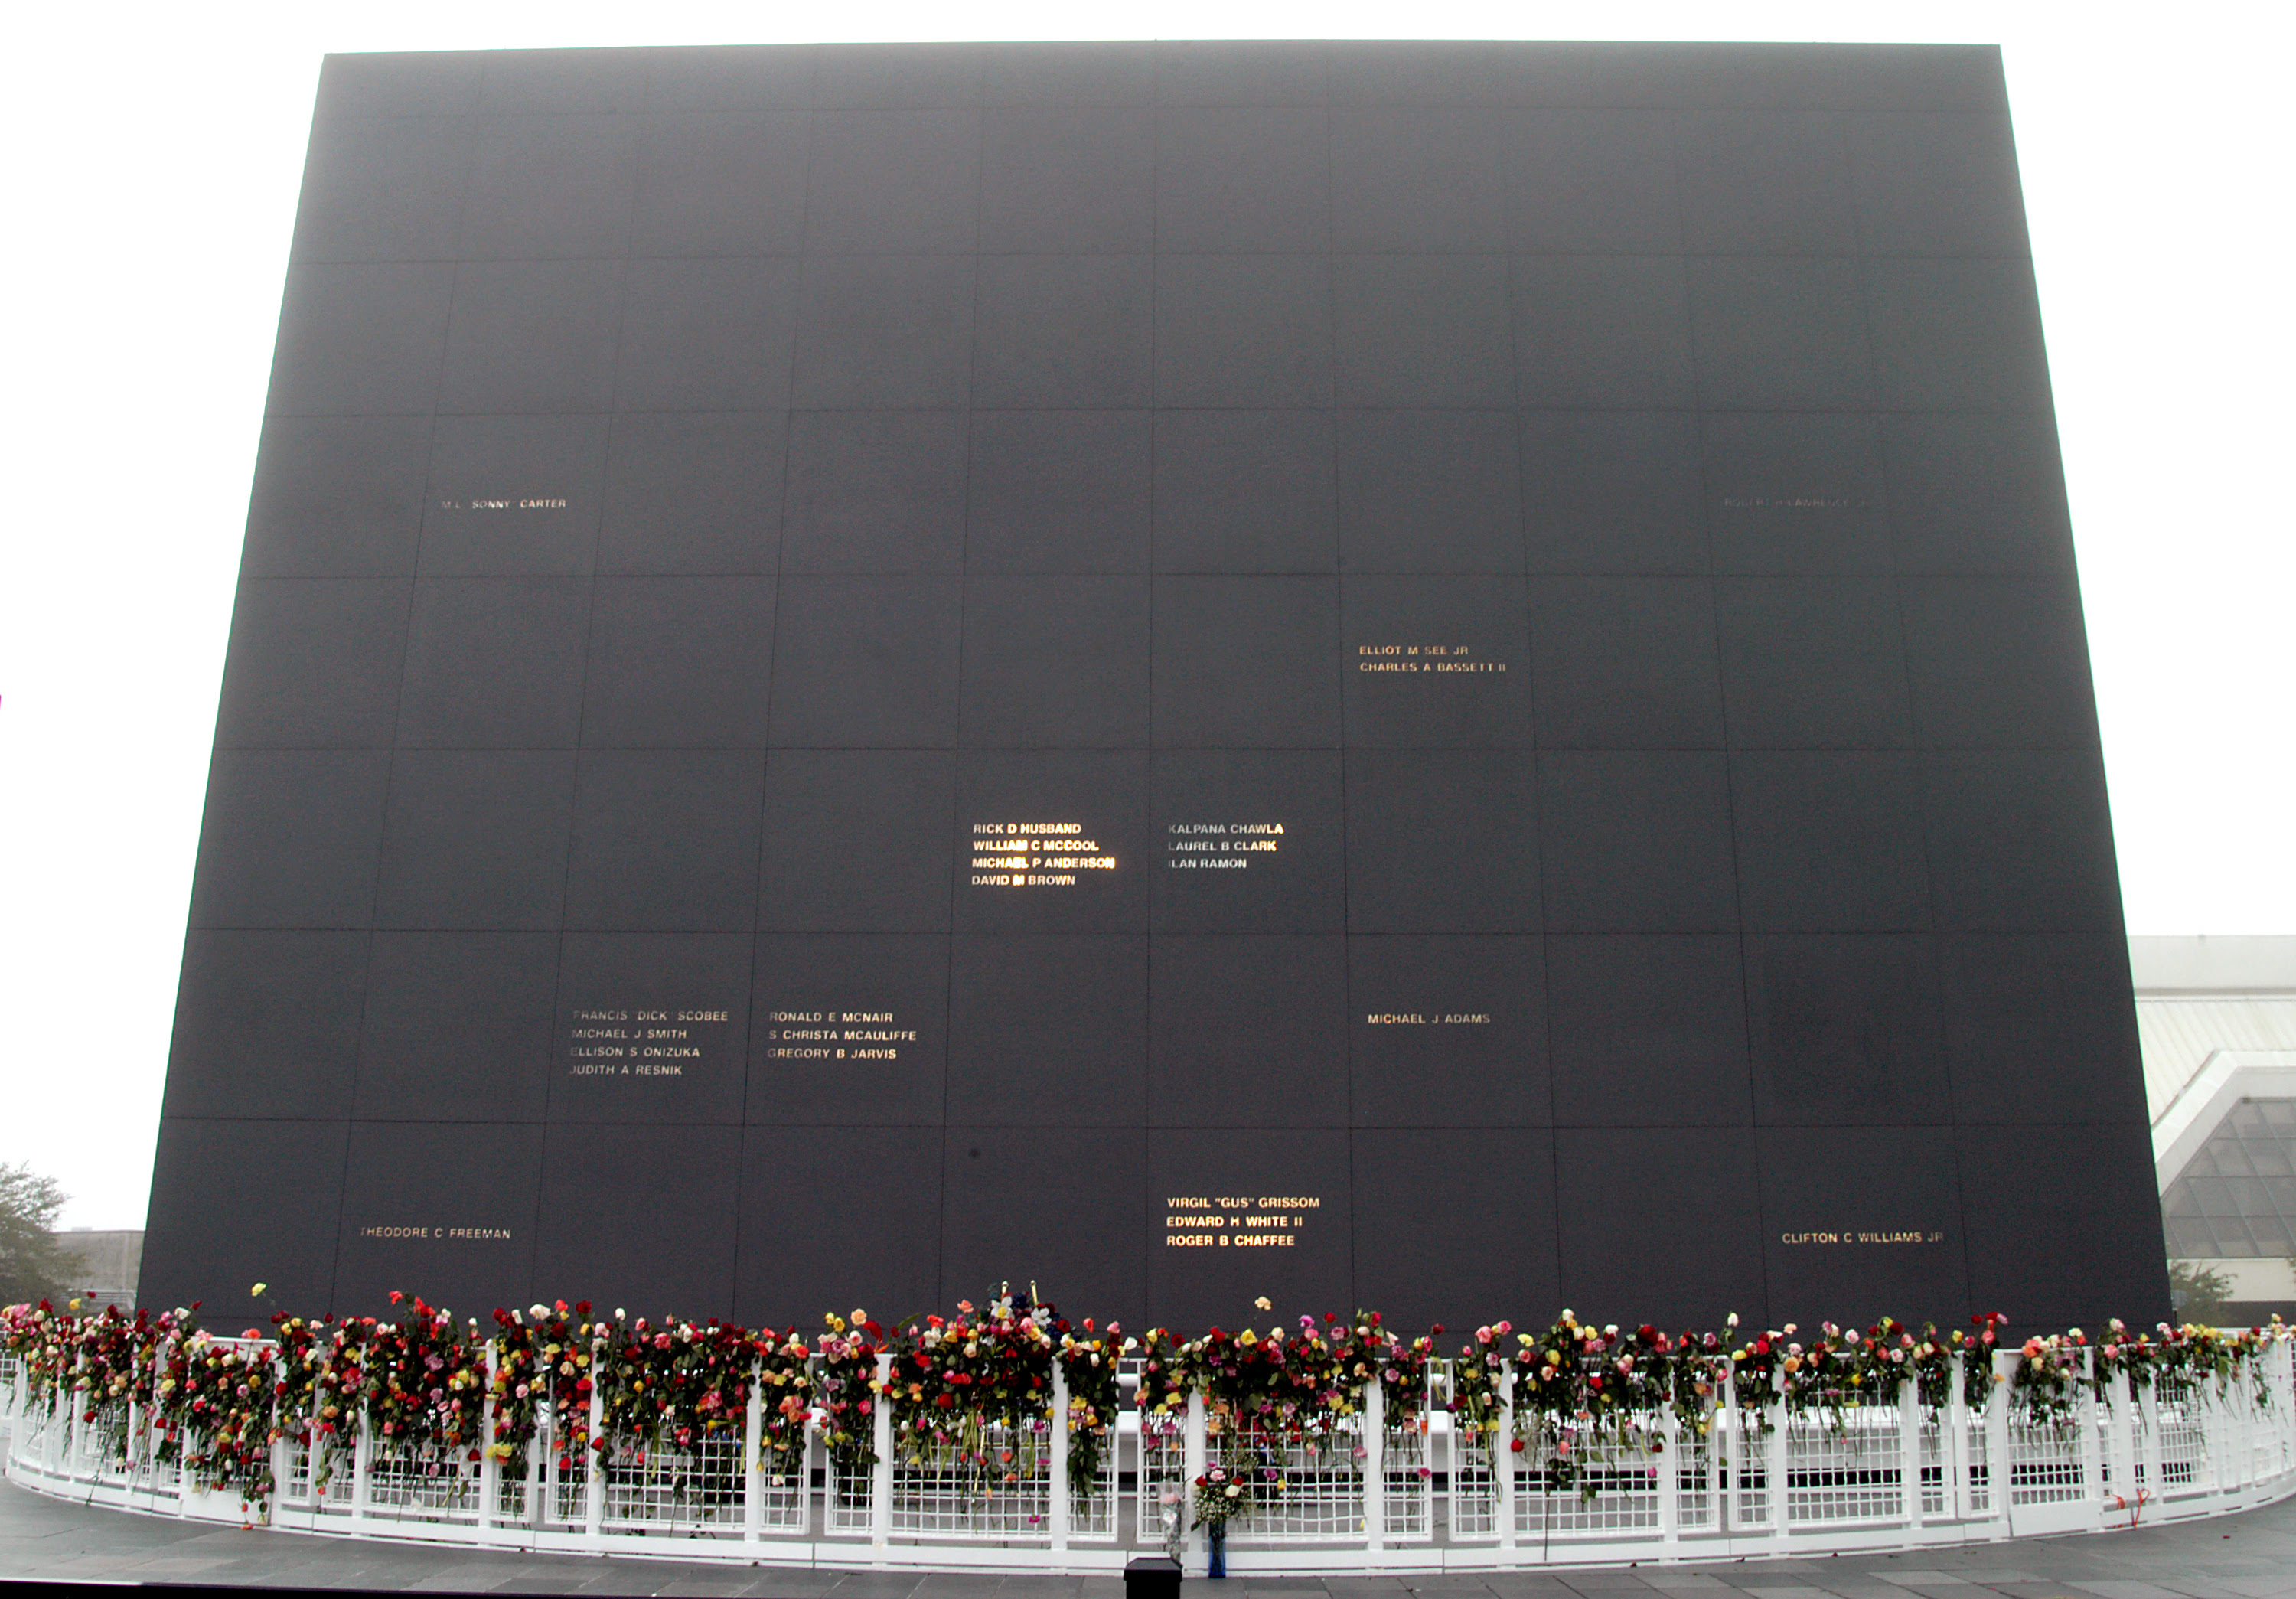 The Space Mirror Memorial was dedicated in 1991 to honor those lost in pursuit of the exploration of space